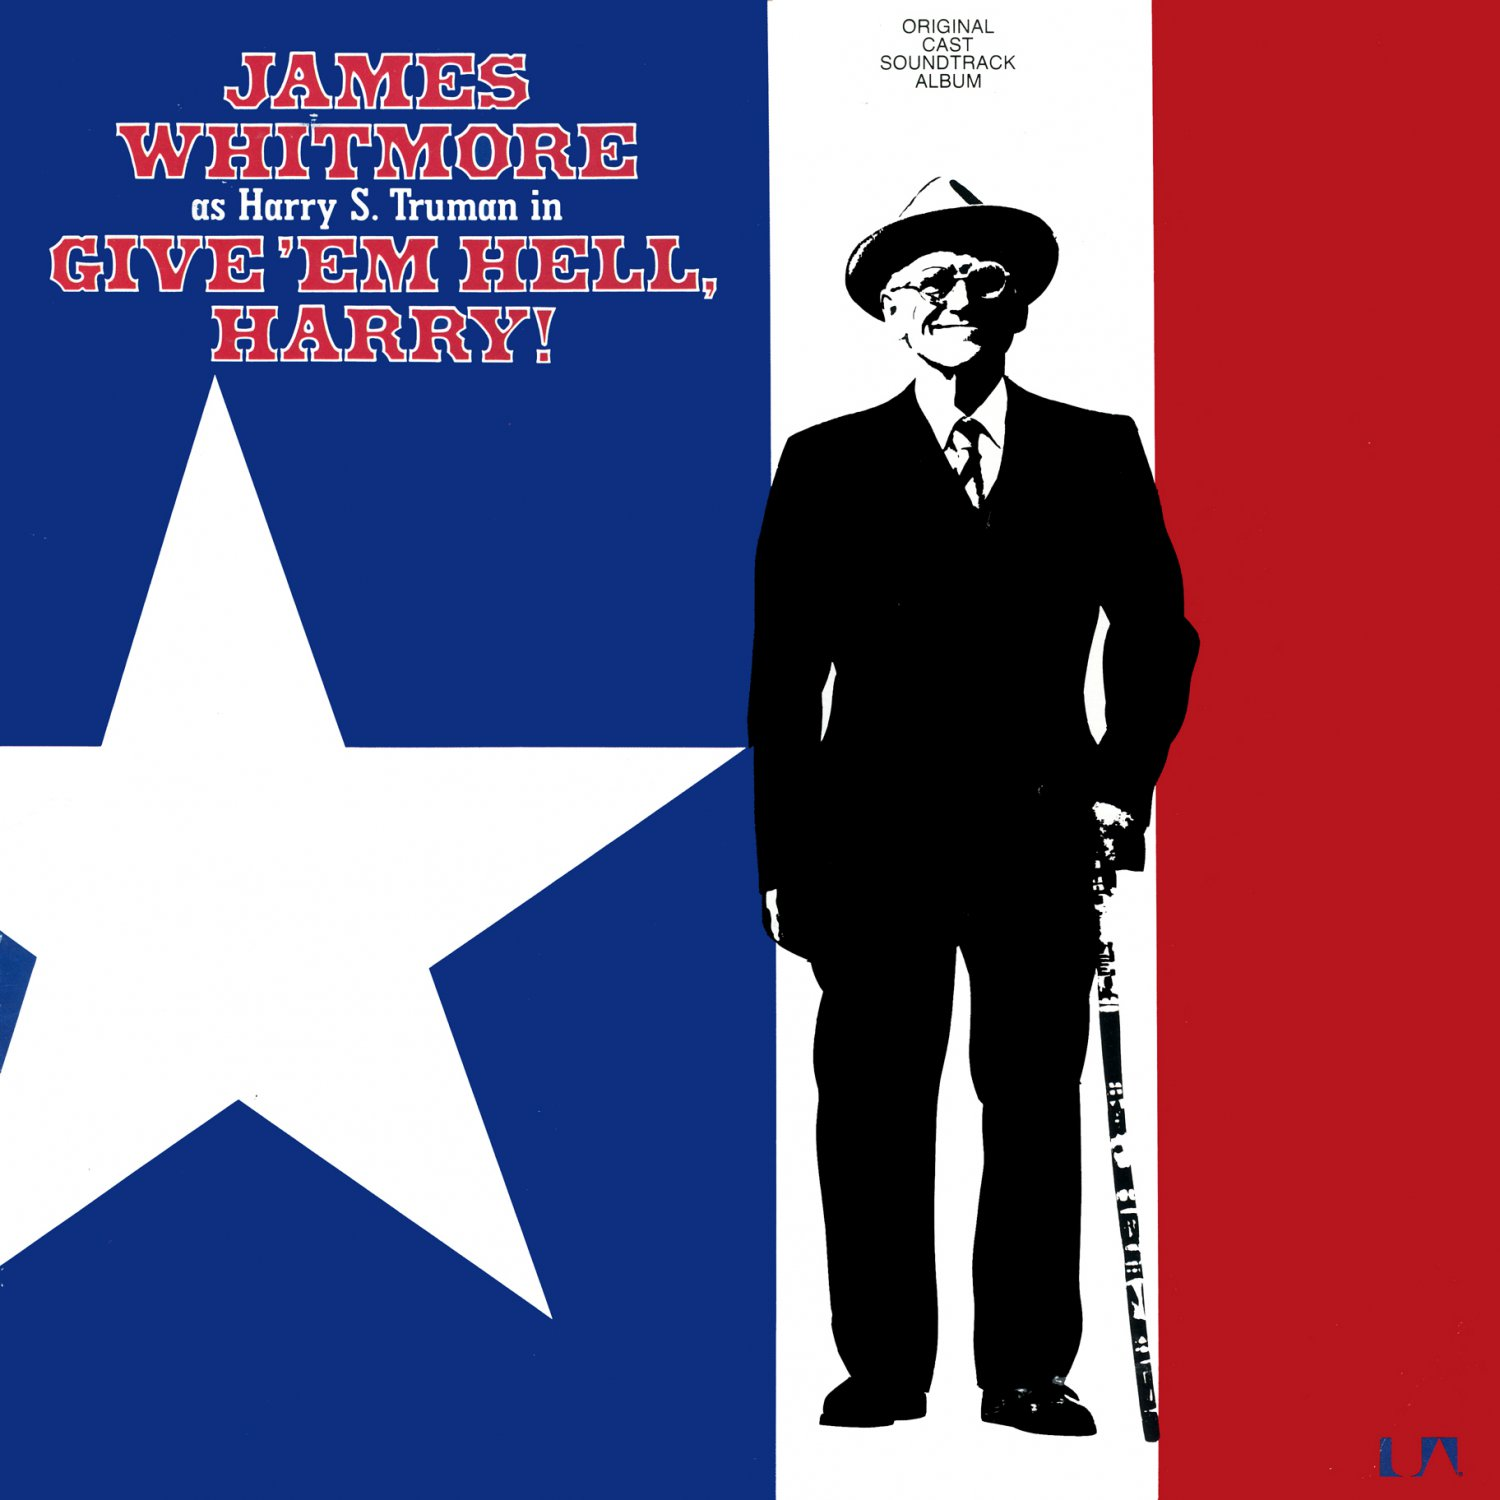 Give 'Em Hell Harry! - Original Cast Soundtrack, James Whitmore as Truman LP/CD